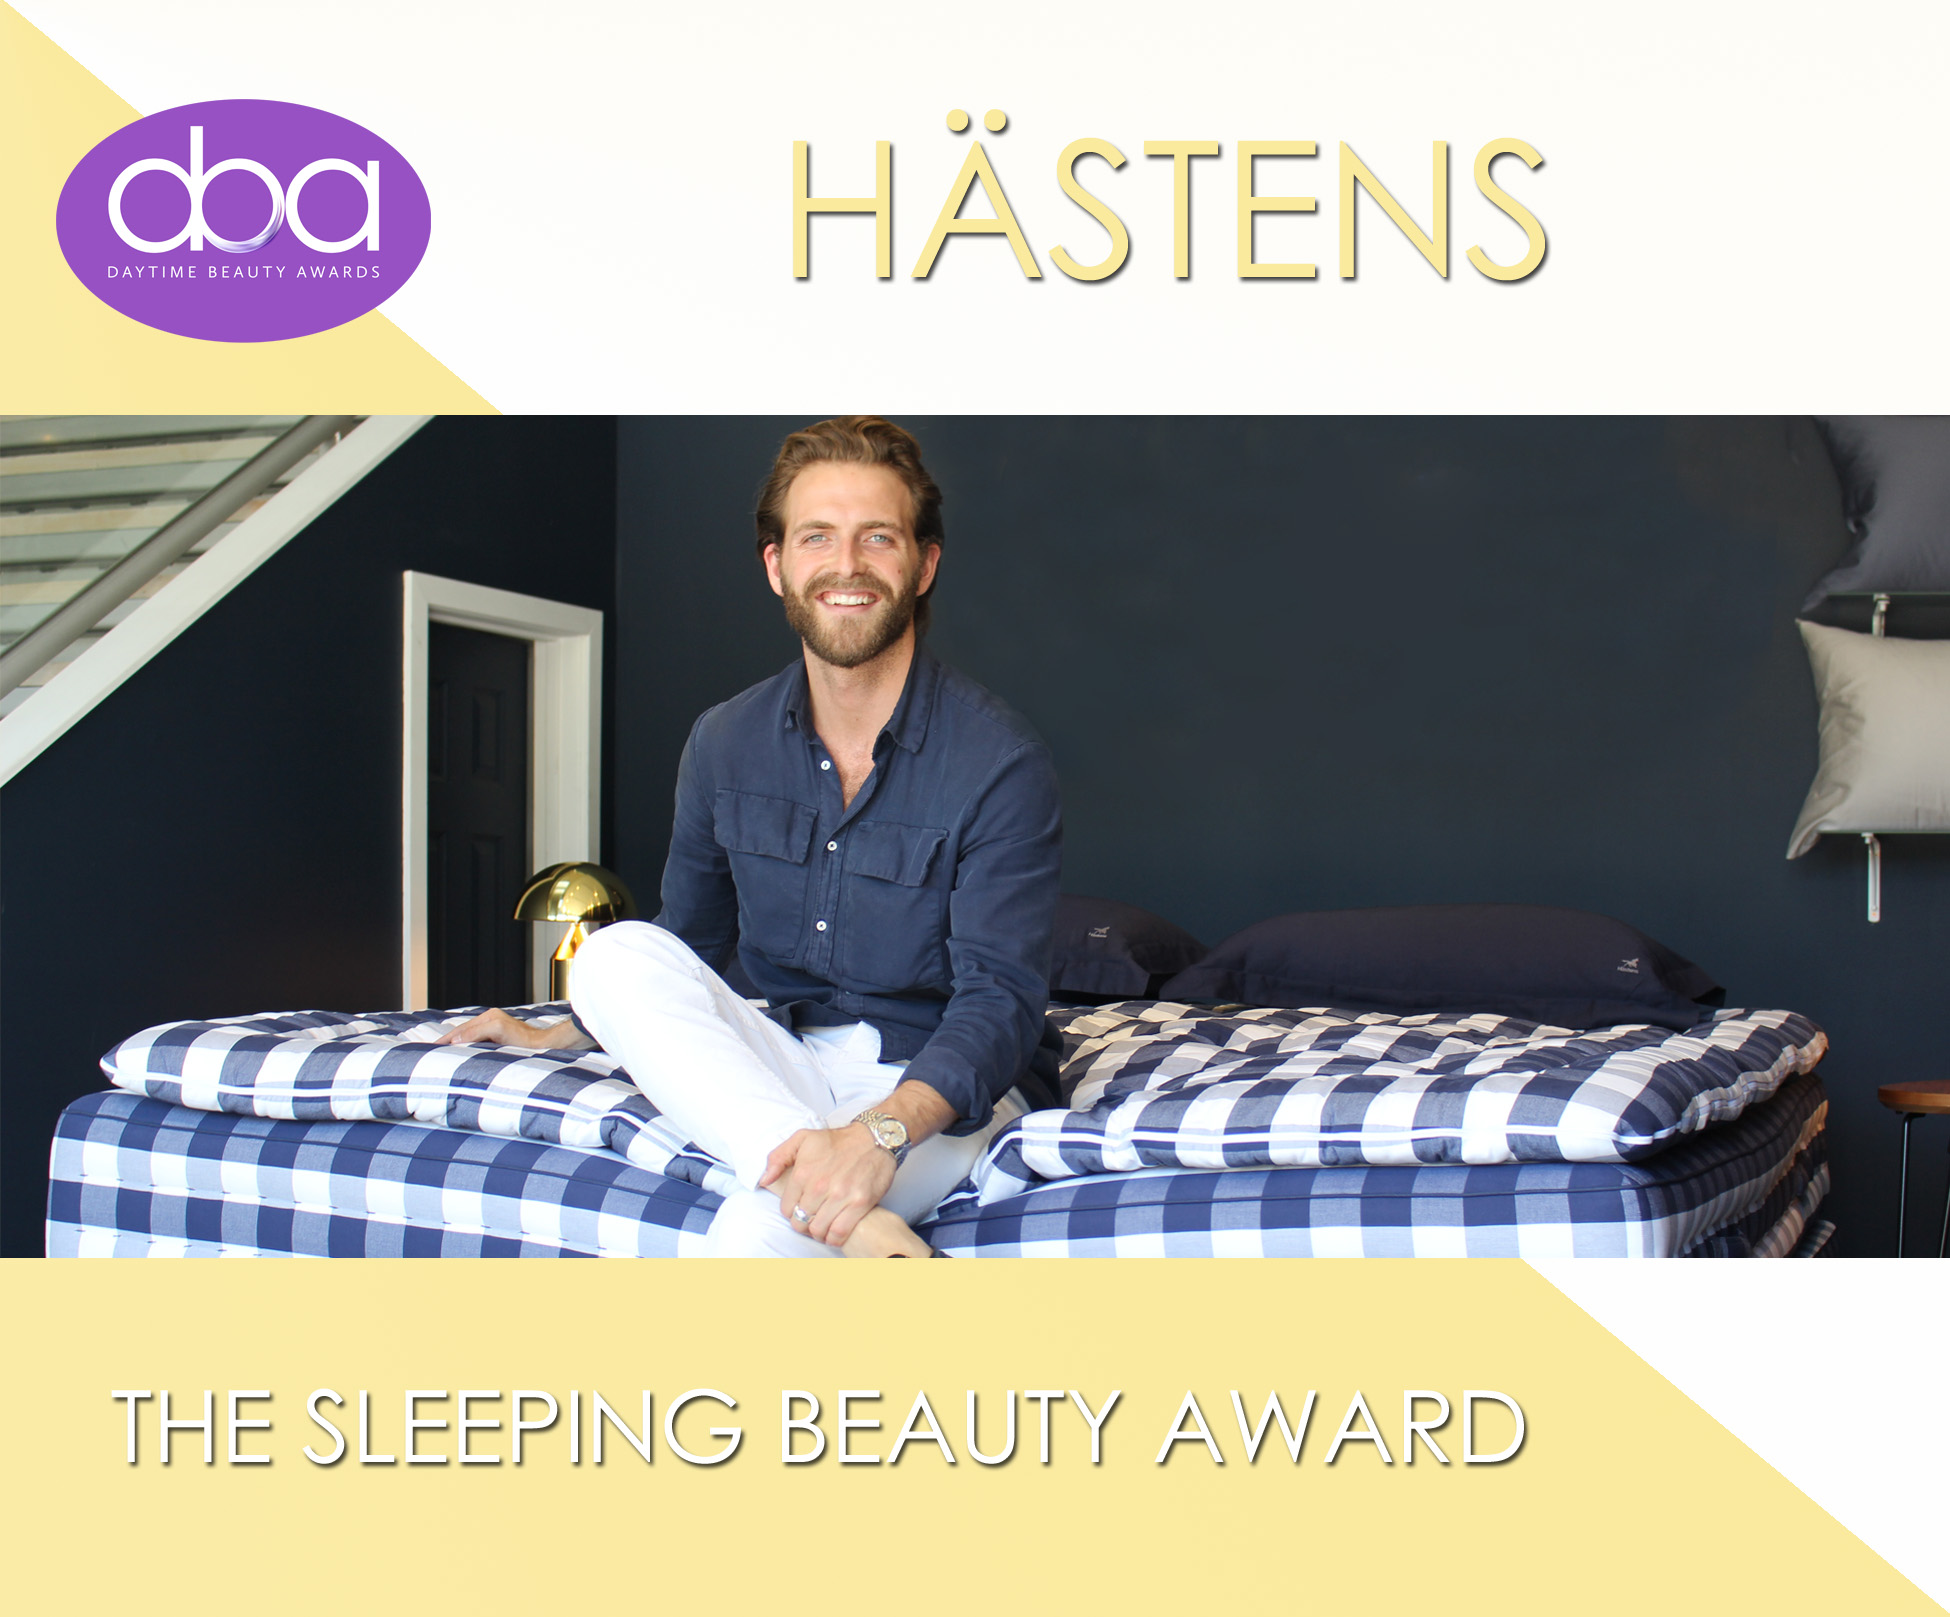 Hastens, carl larsson, daytime beauty awards